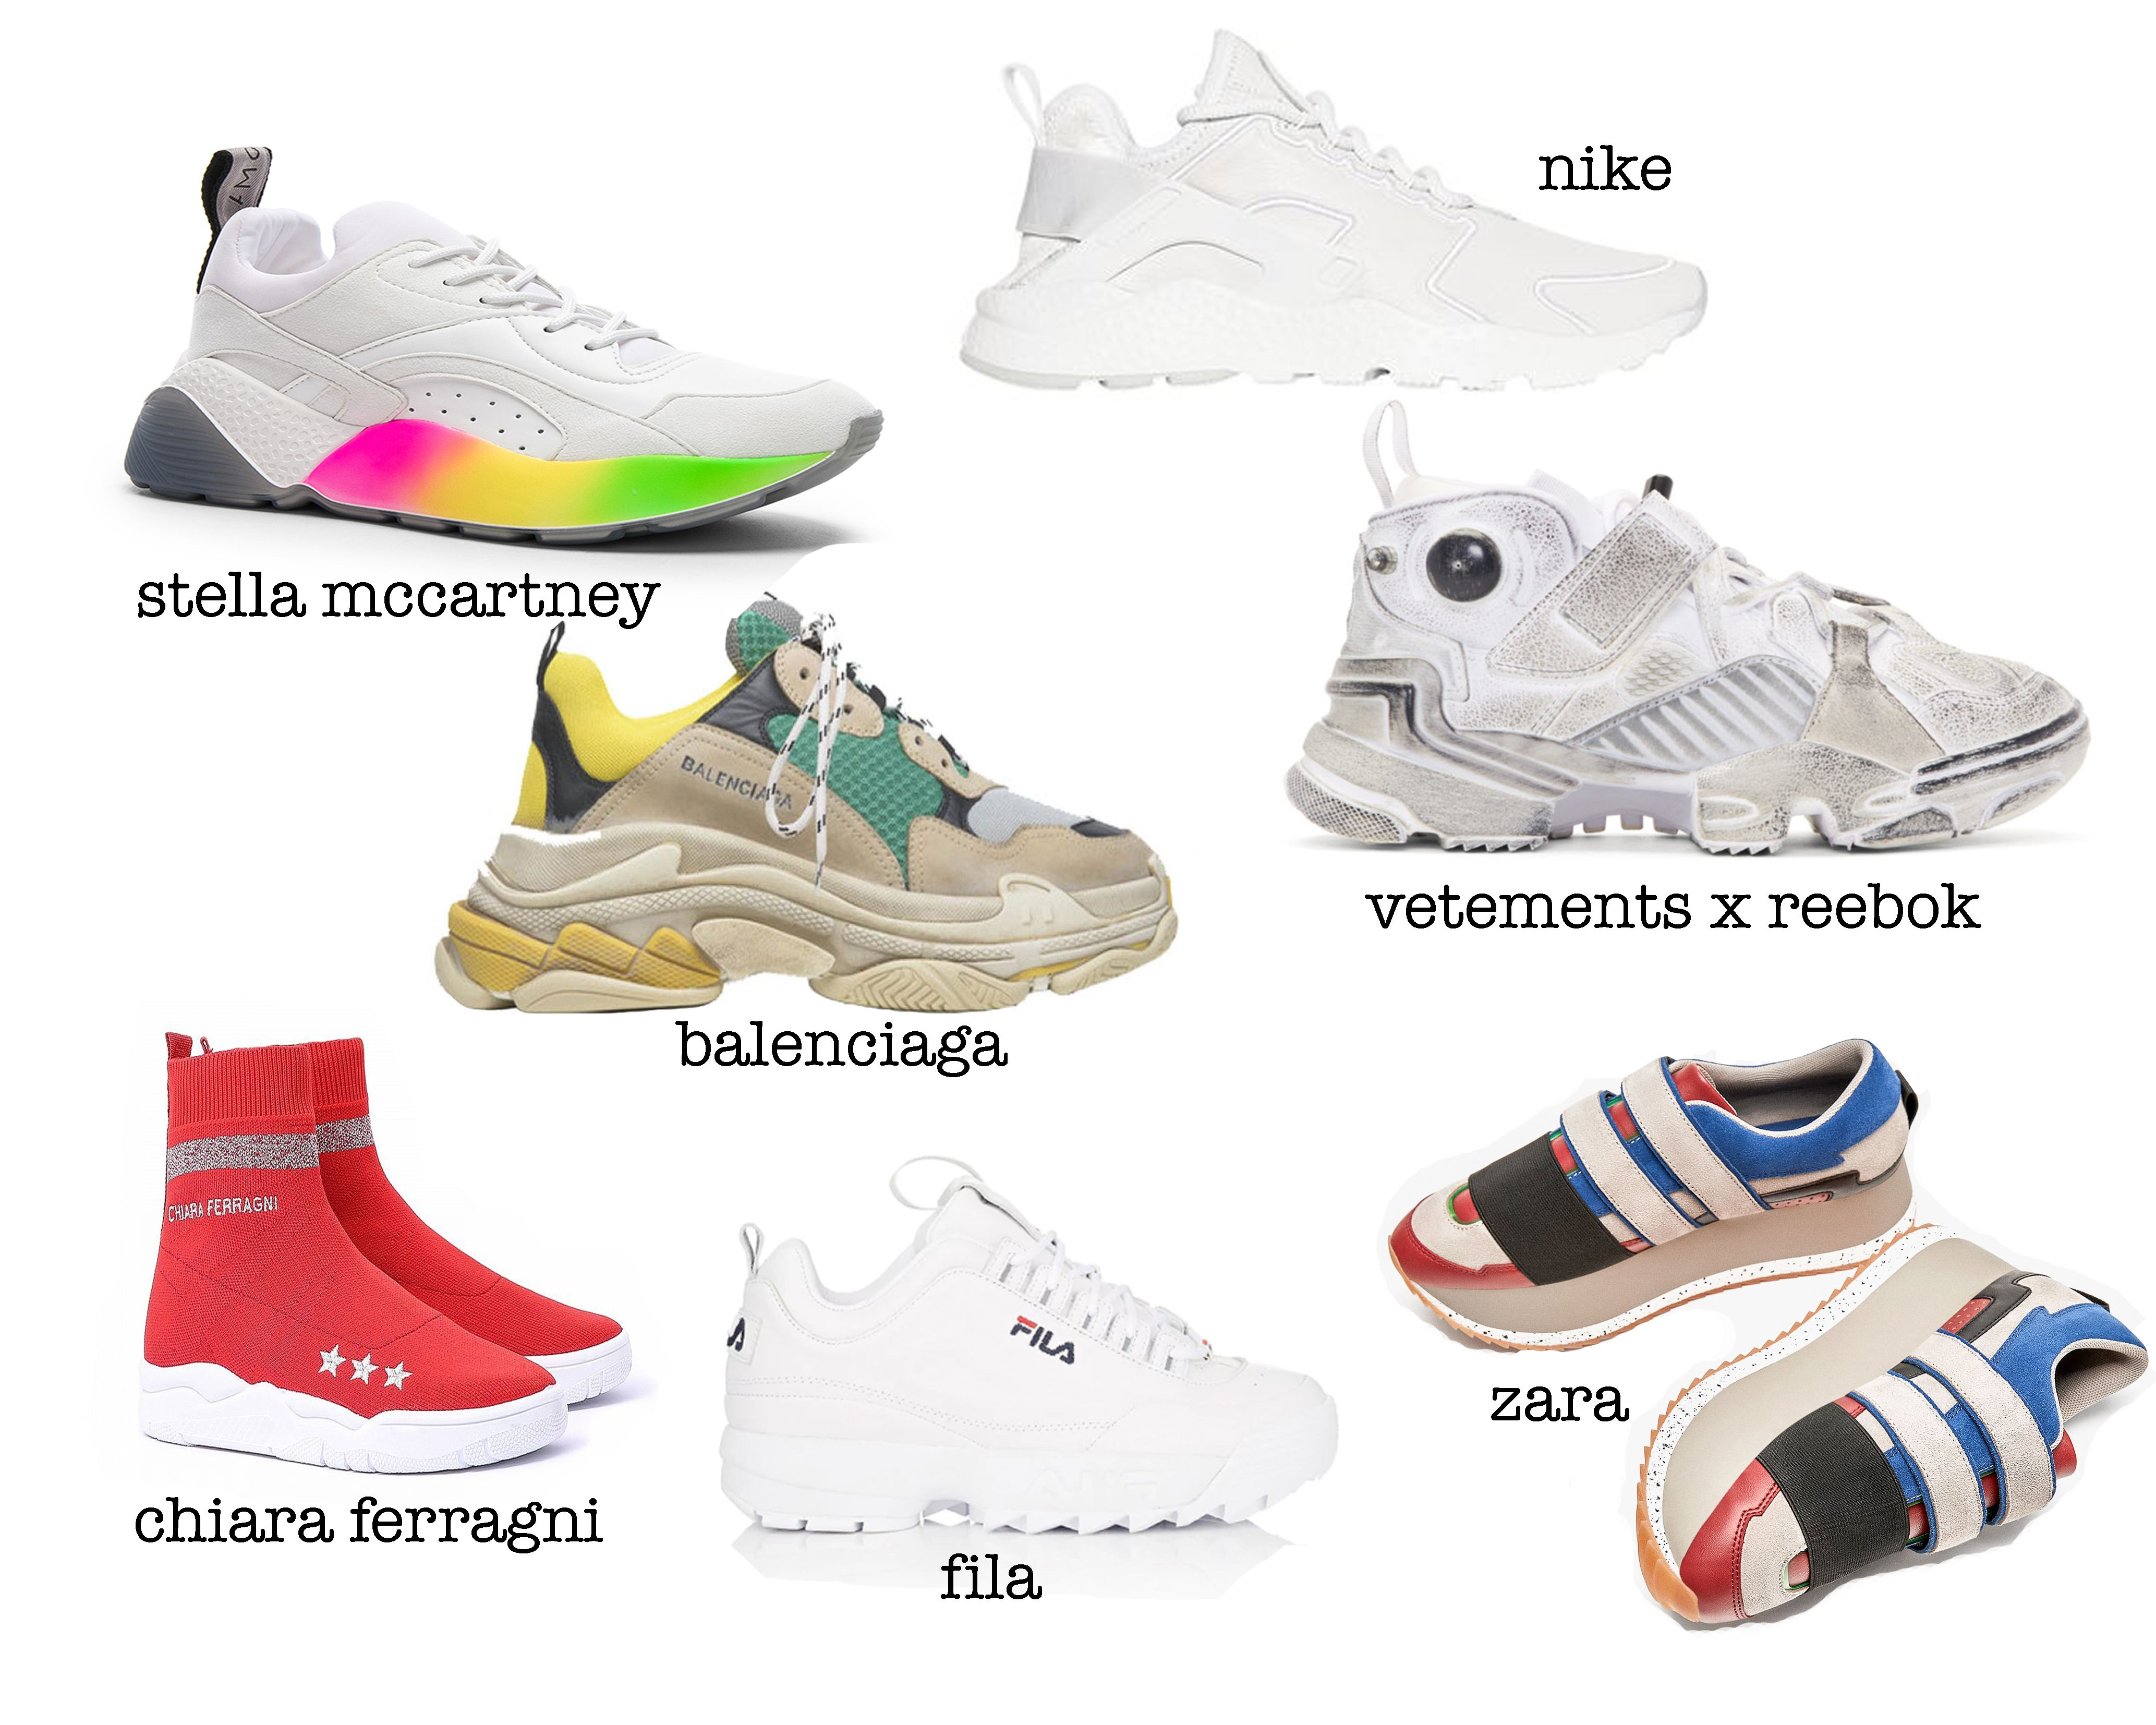 newest 9c44c b7557 From Balenciaga, Stella McCartney to Adidas and fast fashion king - Zara,  sneakers are